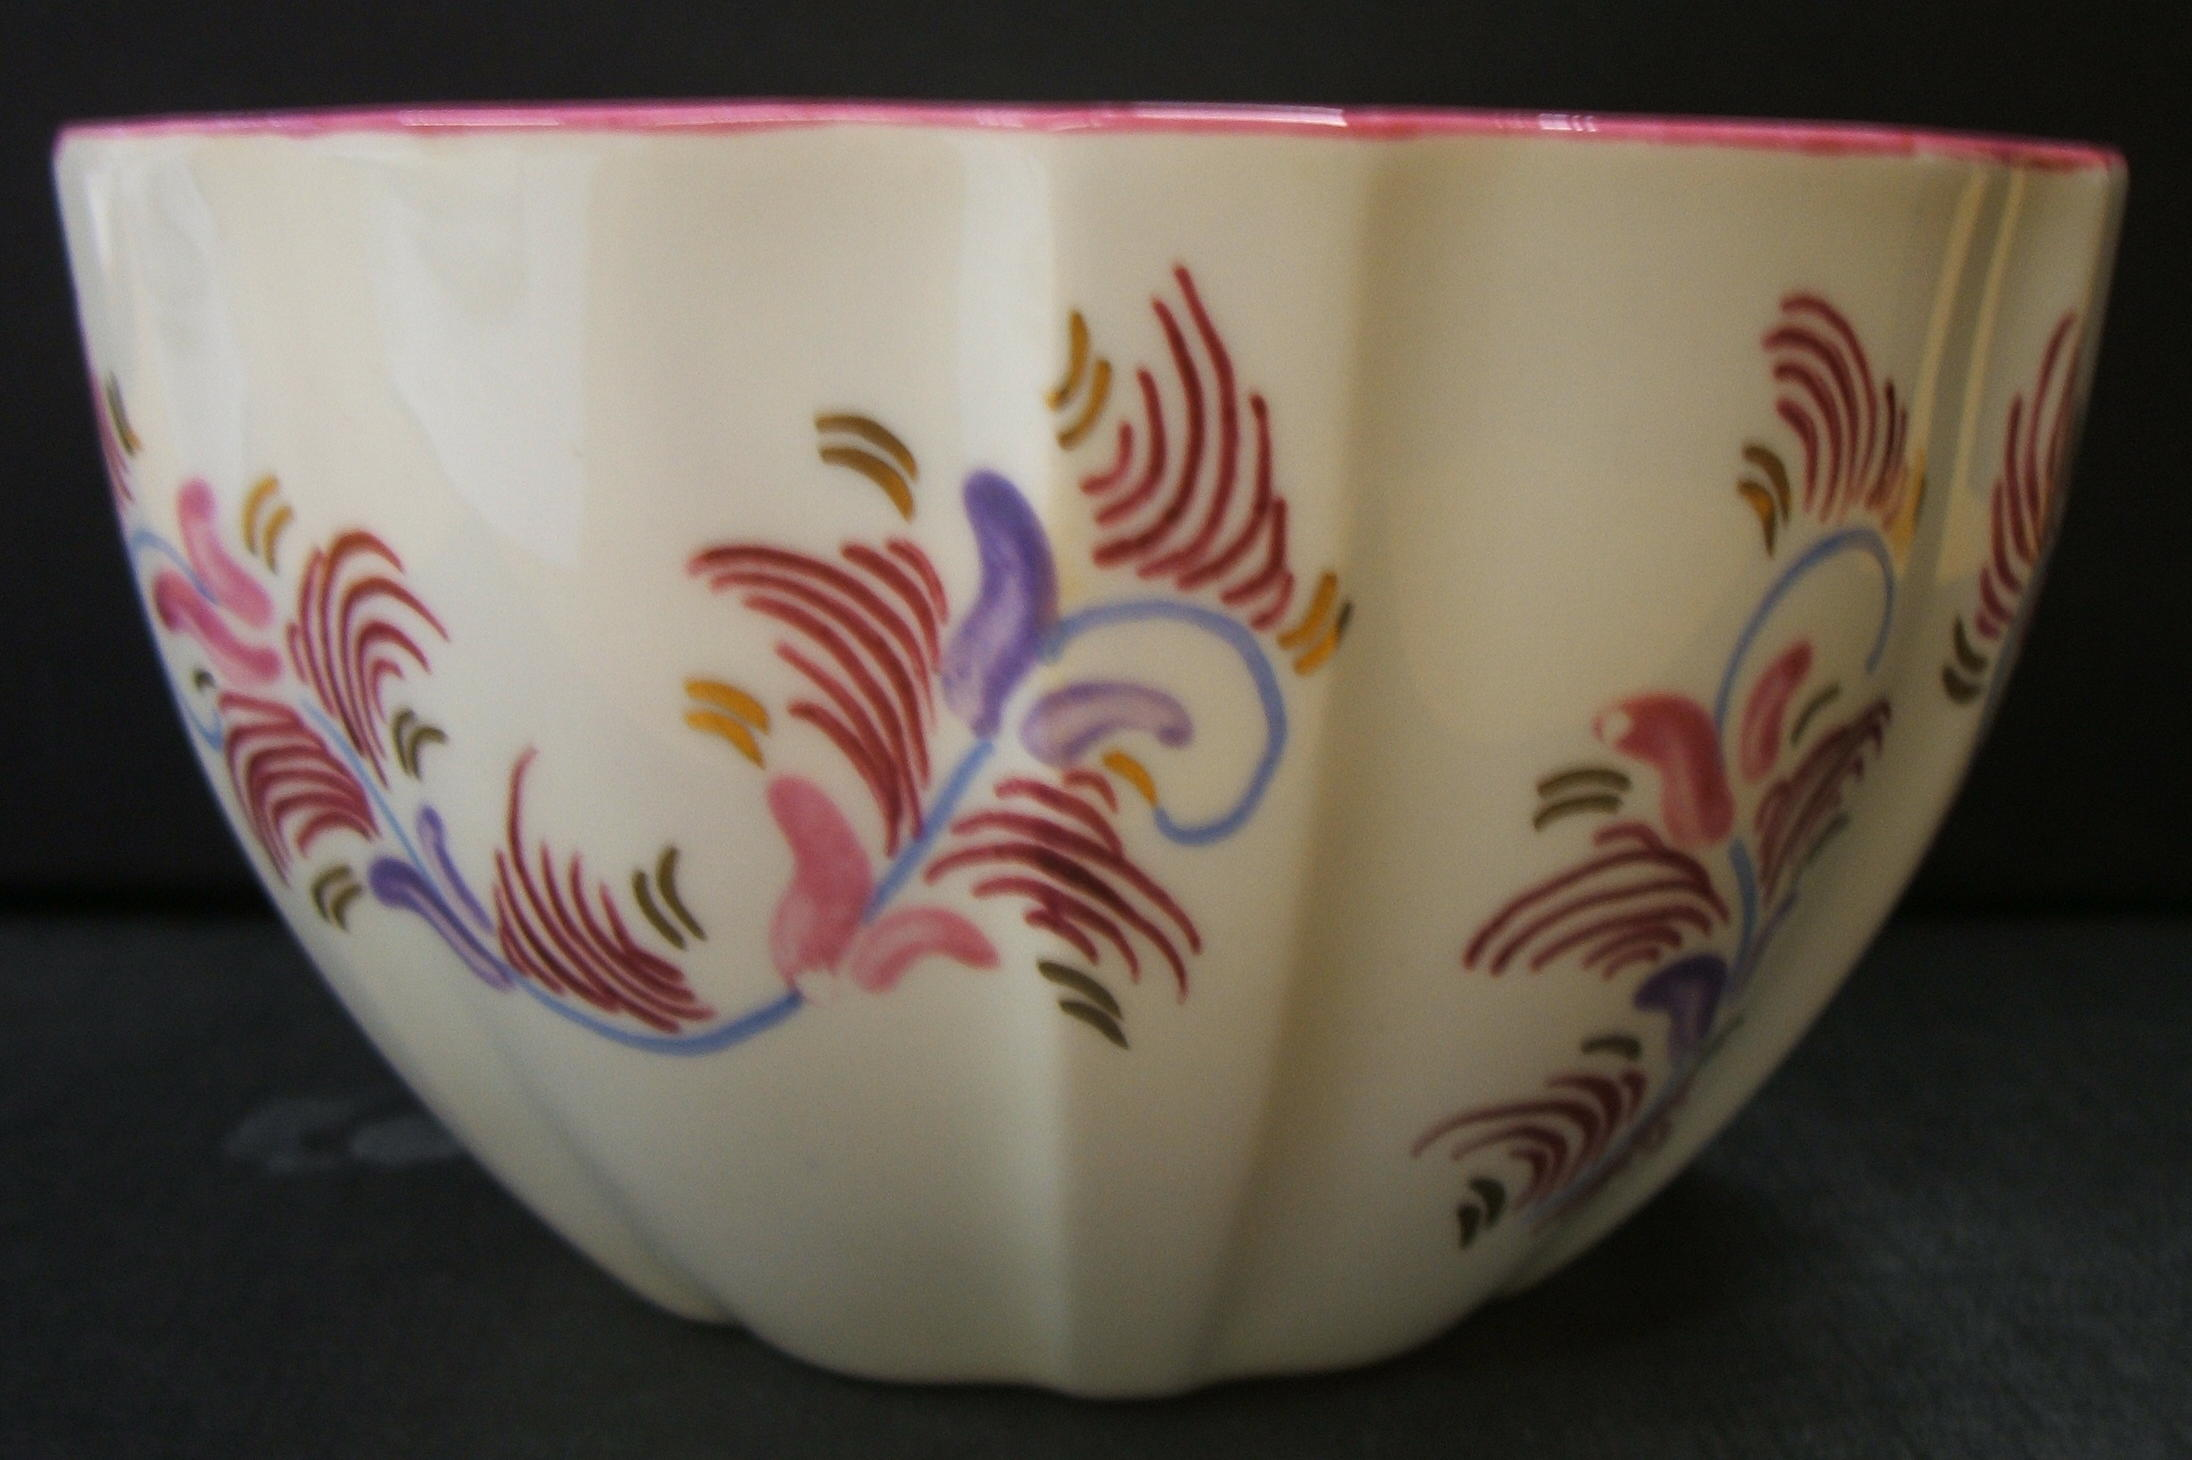 Amateur Painted Maroon Pink Blue and Gold Swirls (3).jpg